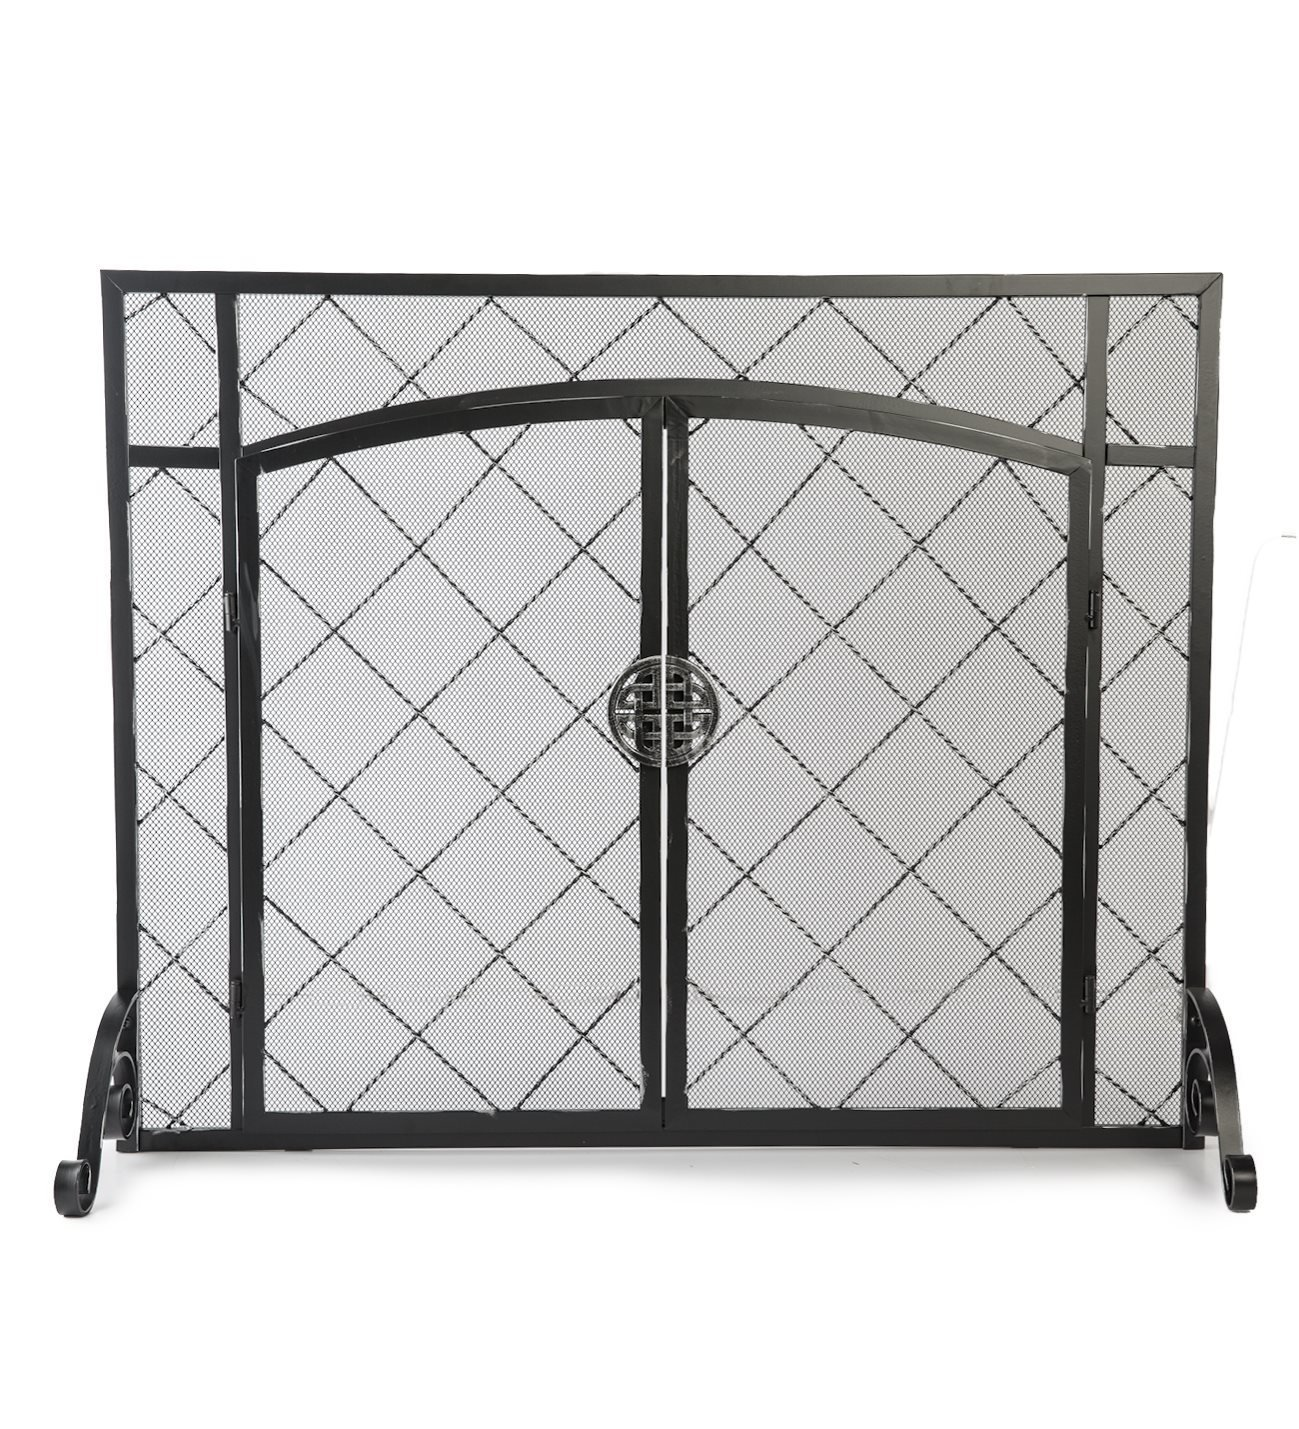 Celtic Knot Large Fireplace Screen with Hinged Doors, Powder Coated Steel Frame, Metal Mesh, Decorative Design, Free Standing Spark Guard- 44 W x 33 H Black by Plow & Hearth